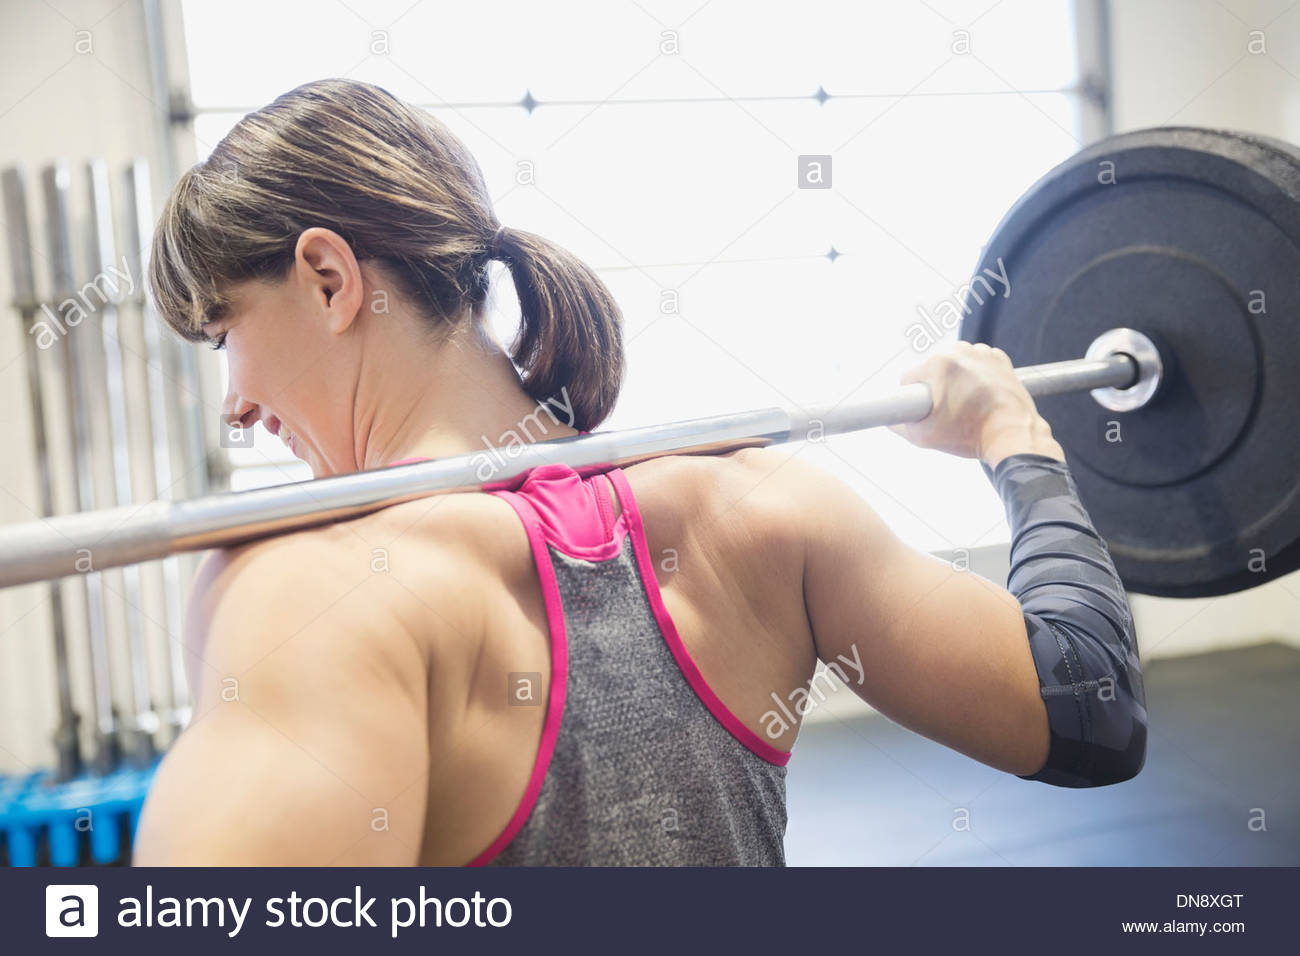 Woman standing with barbell on shoulders - Stock Image